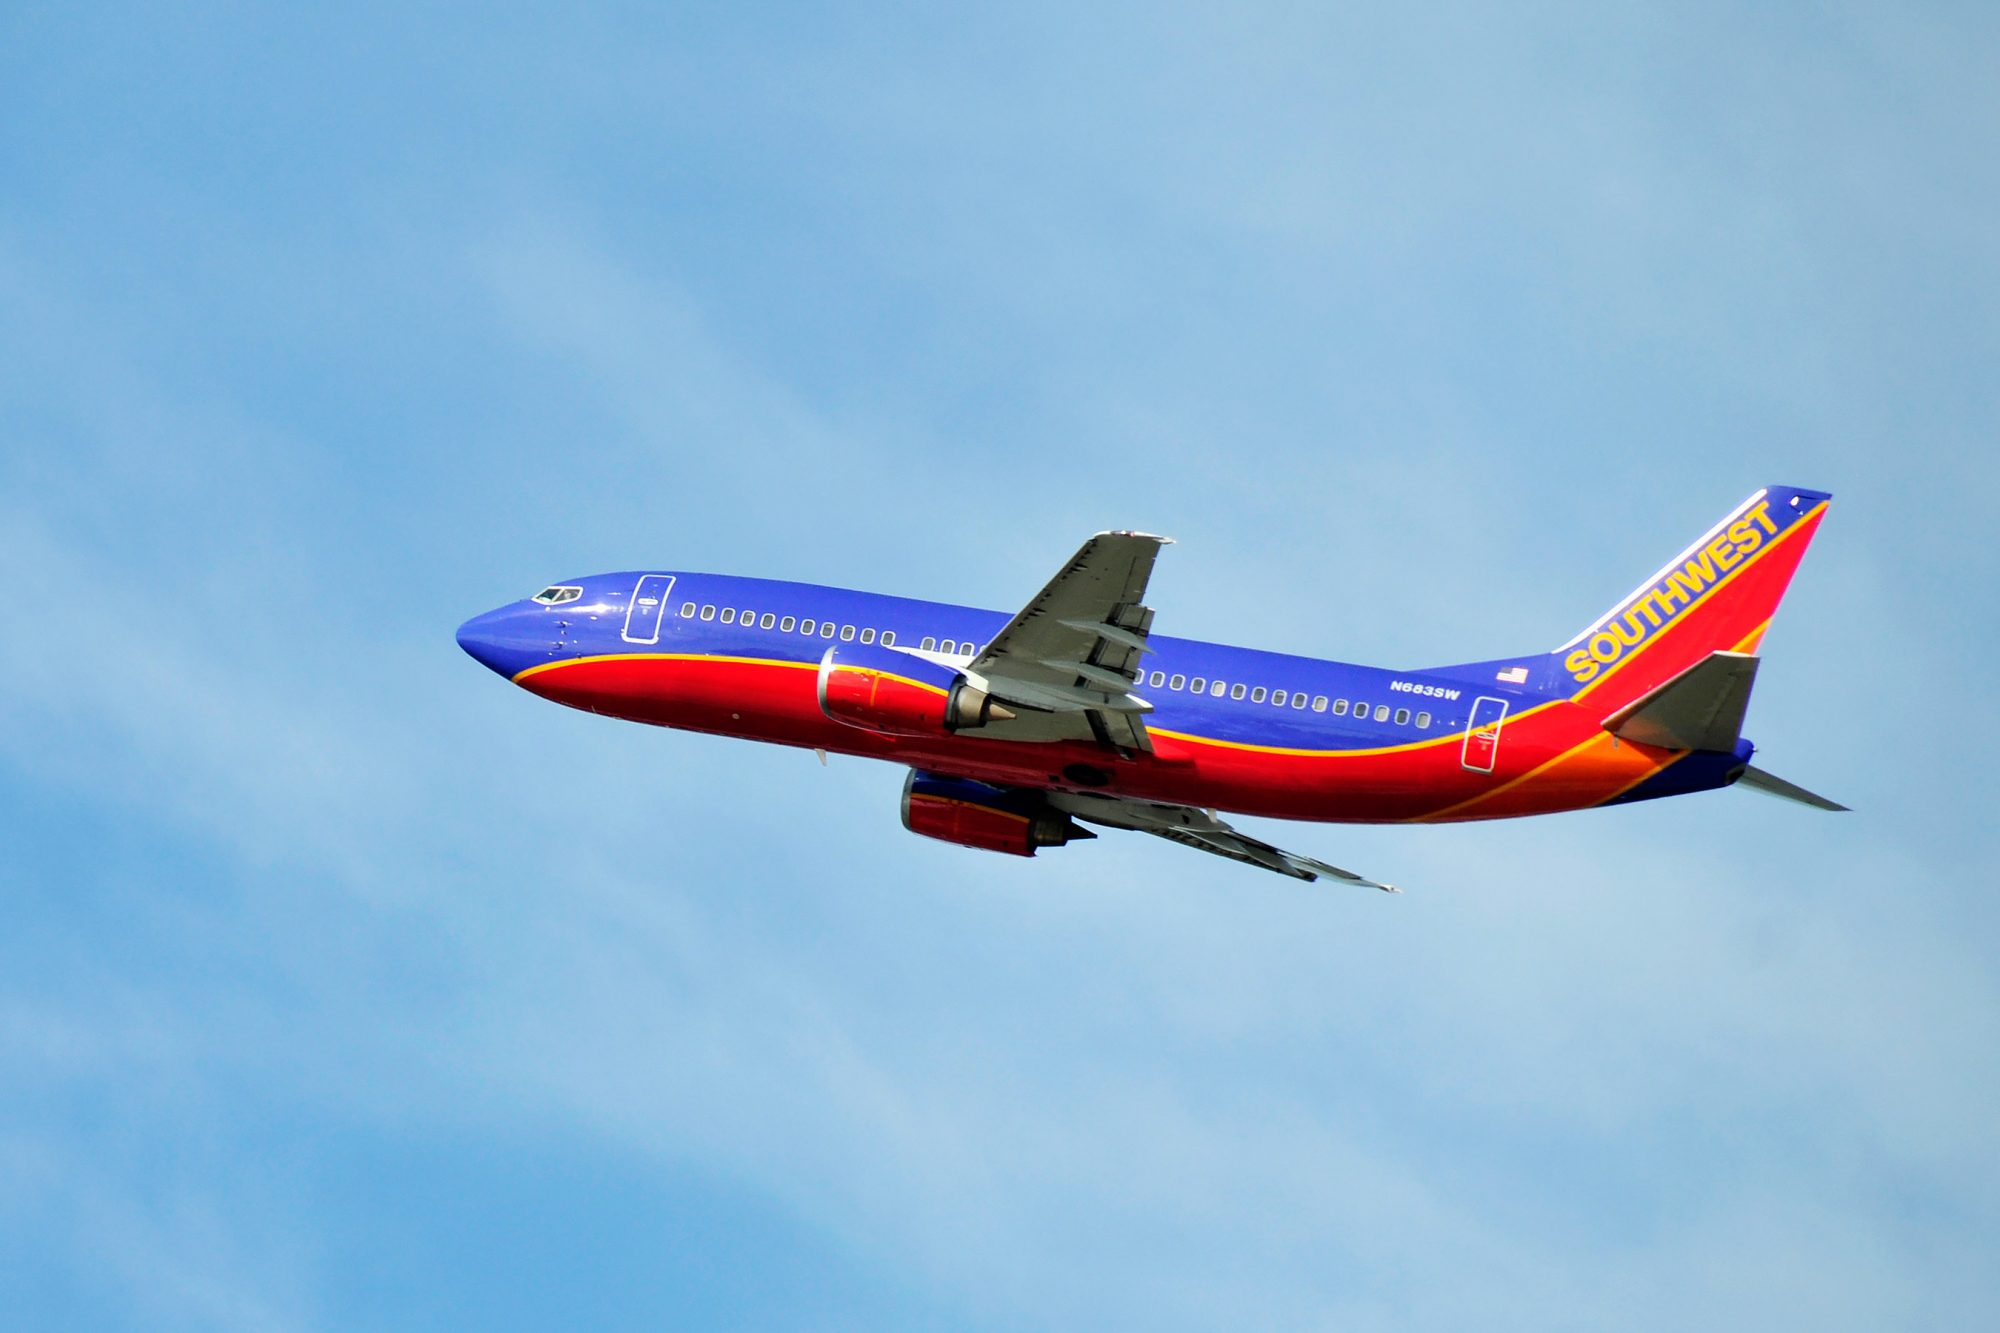 In June and October snag $49 one-way flights to Nashville or $159 tickets to Honolulu. (Blackout days apply.)